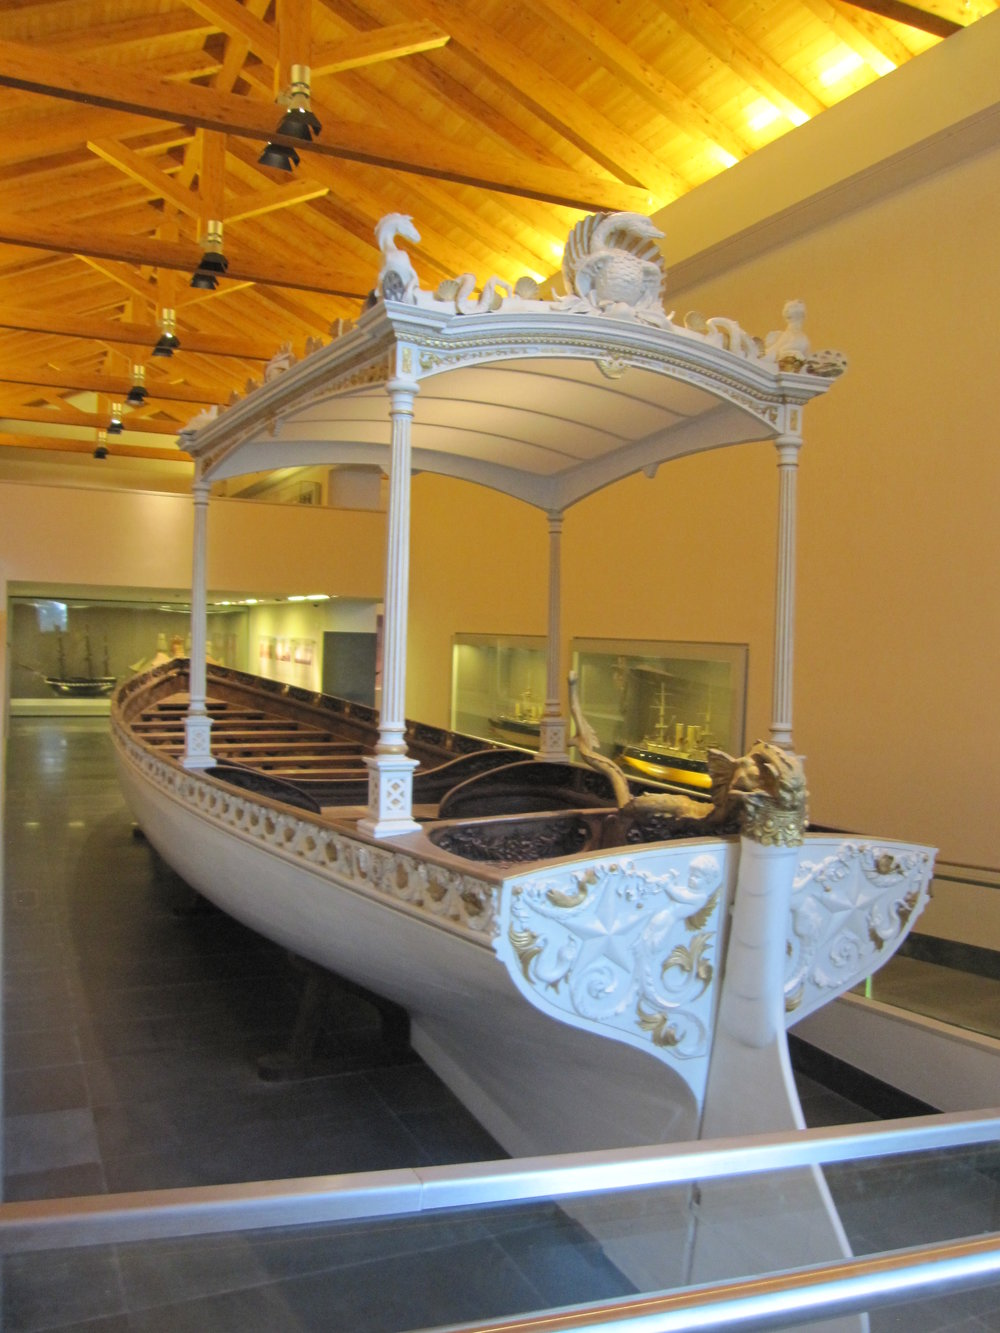 Naval section of the Museum.